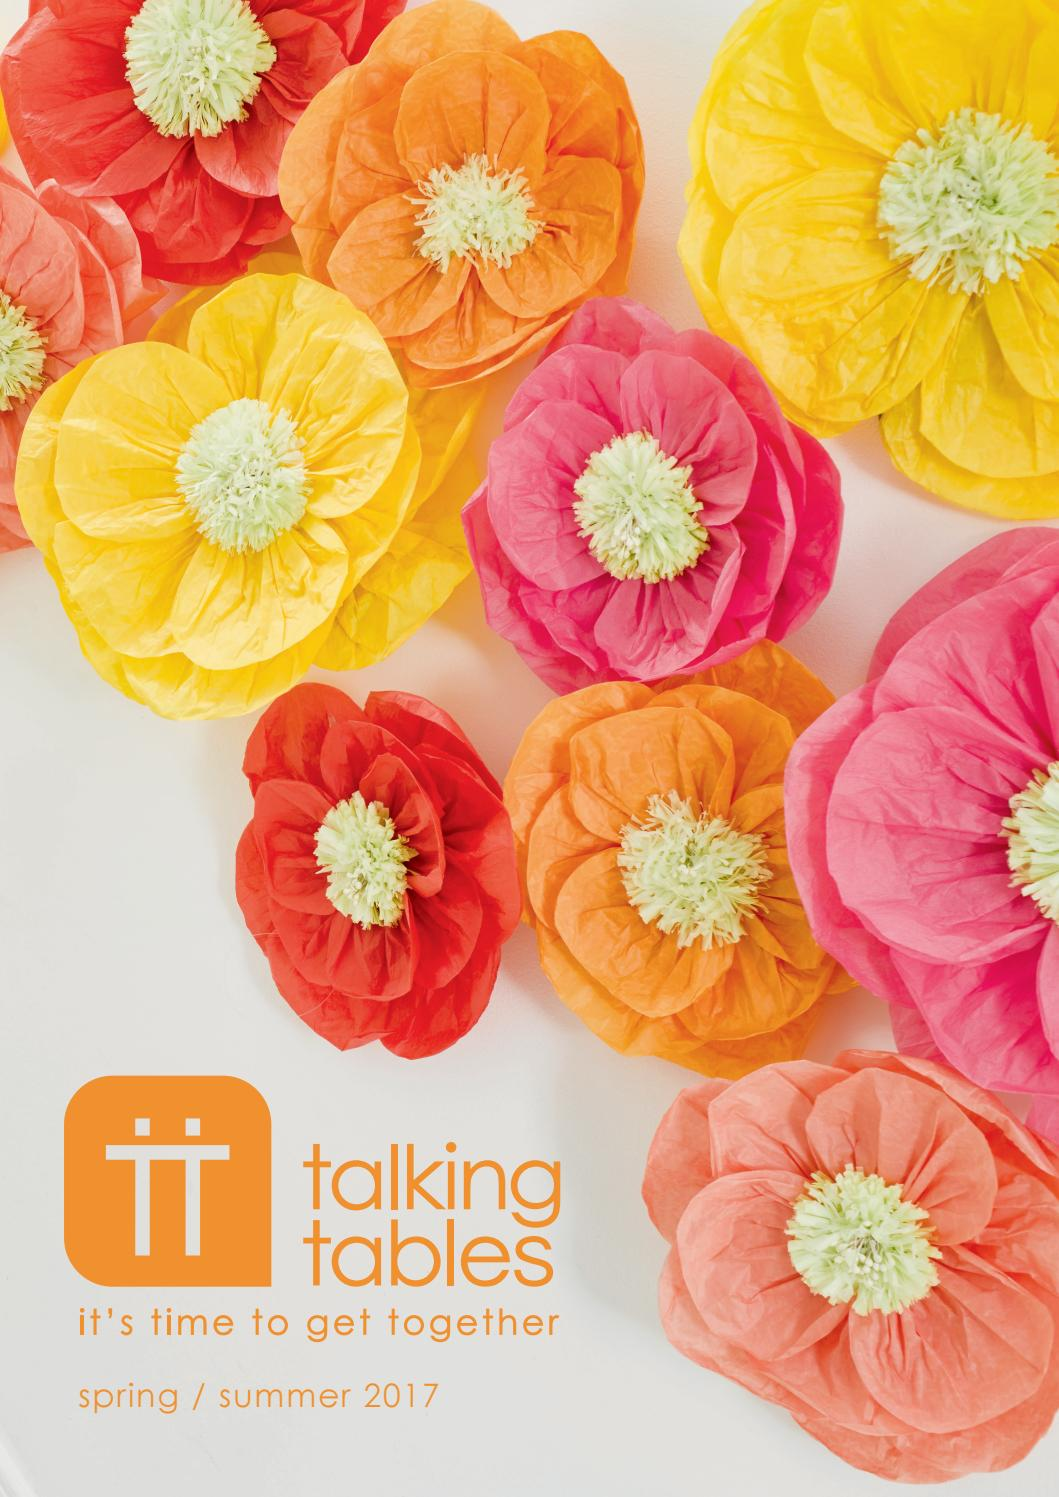 40 Pack Talking Tables Blossom /& Brogues Floral Paper Napkins for a Wedding or Tea Party Multicolor